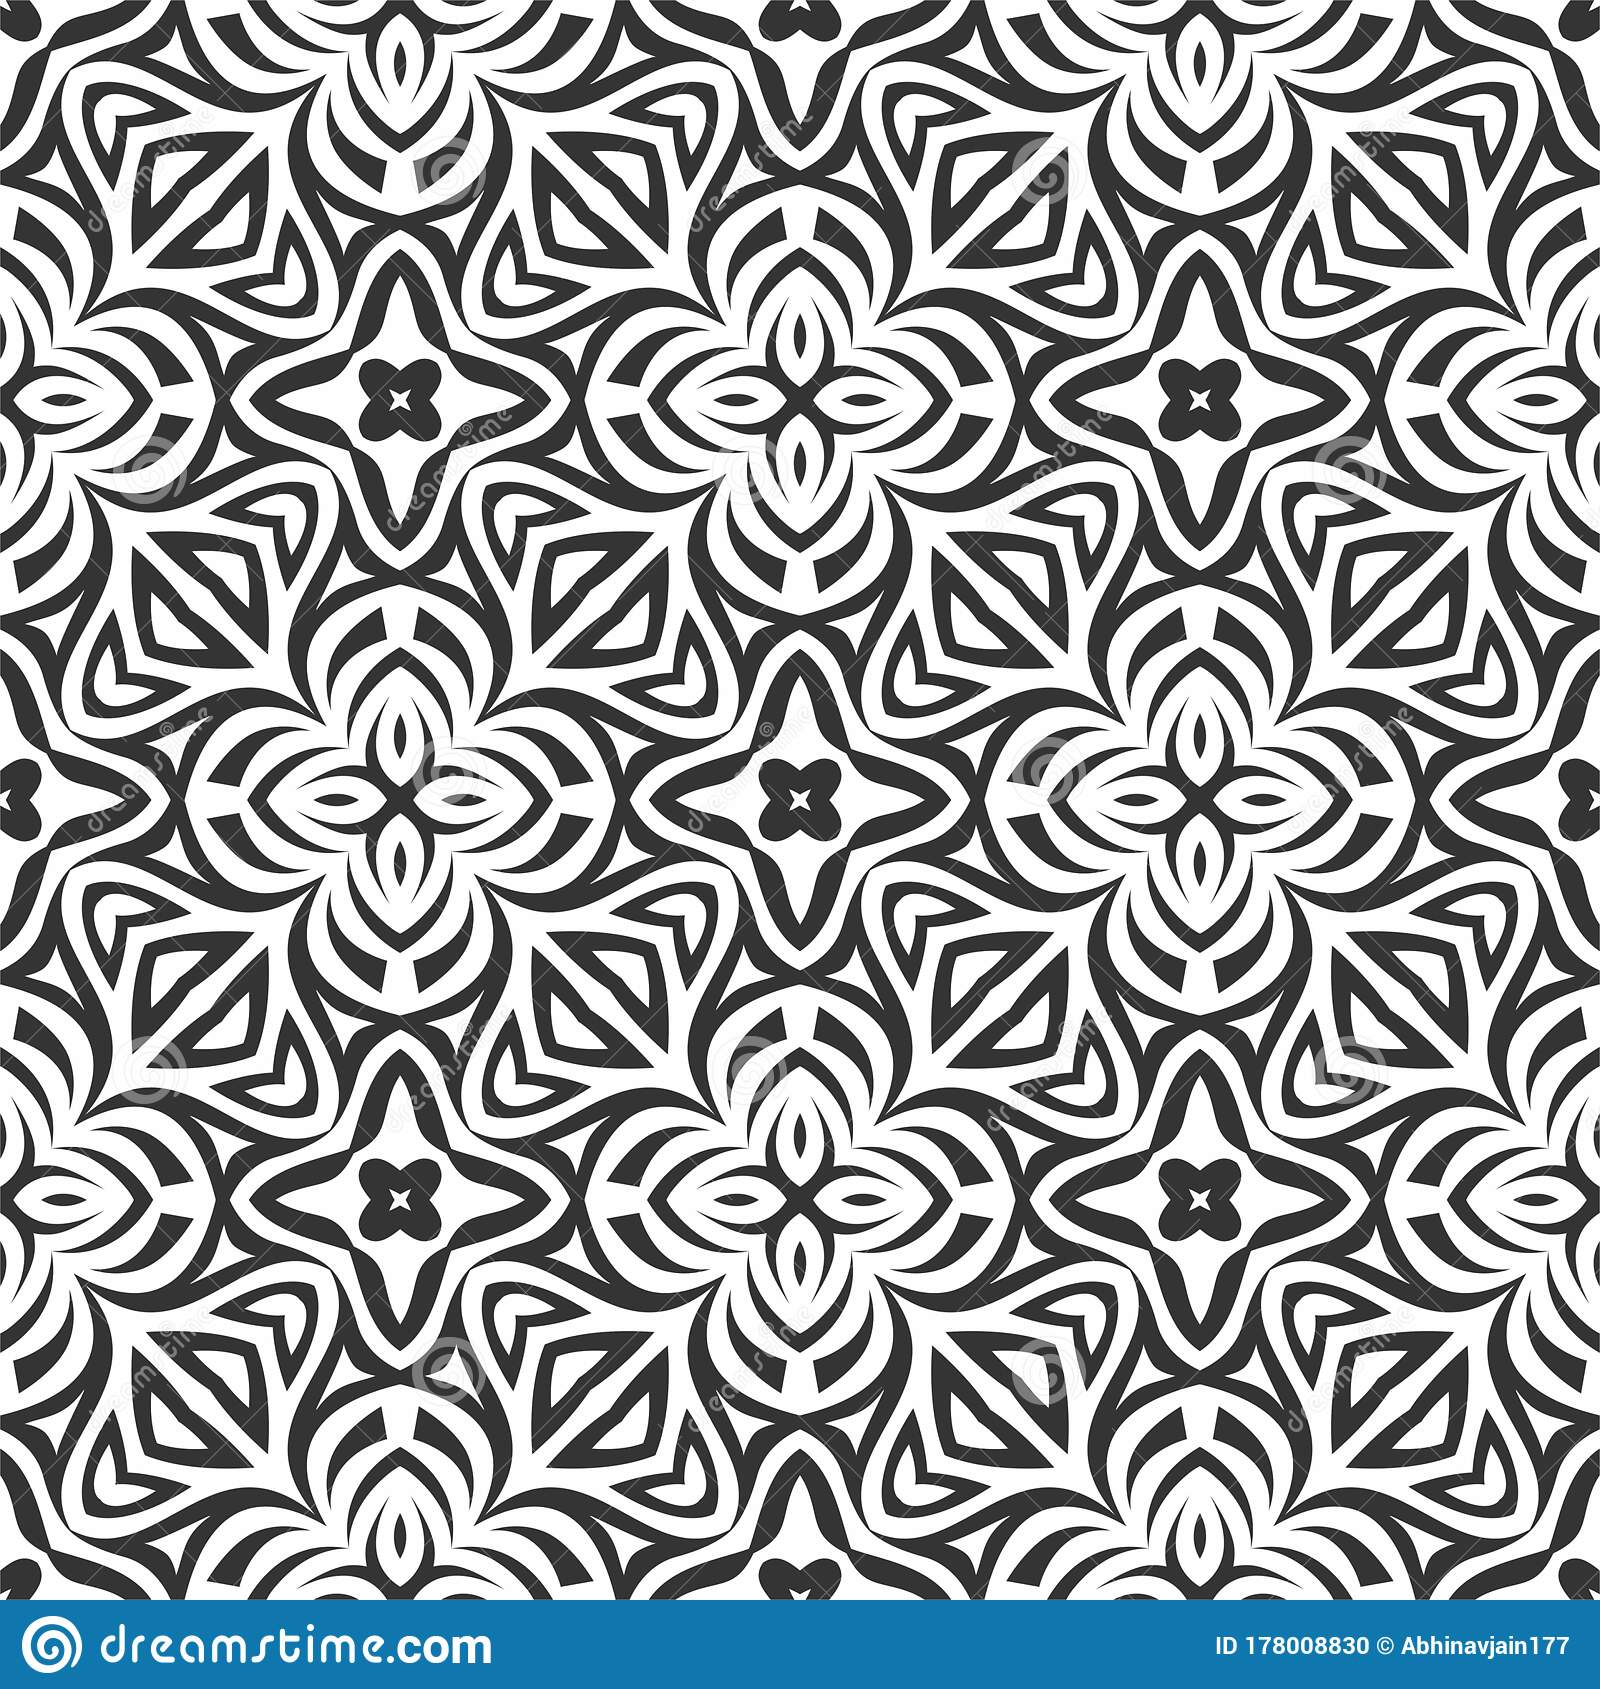 Geometric Flower Pattern Black N White Bold Lines Floral Pattern Texture Background In Vector Stock Vector Illustration Of Geometric Lines 178008830